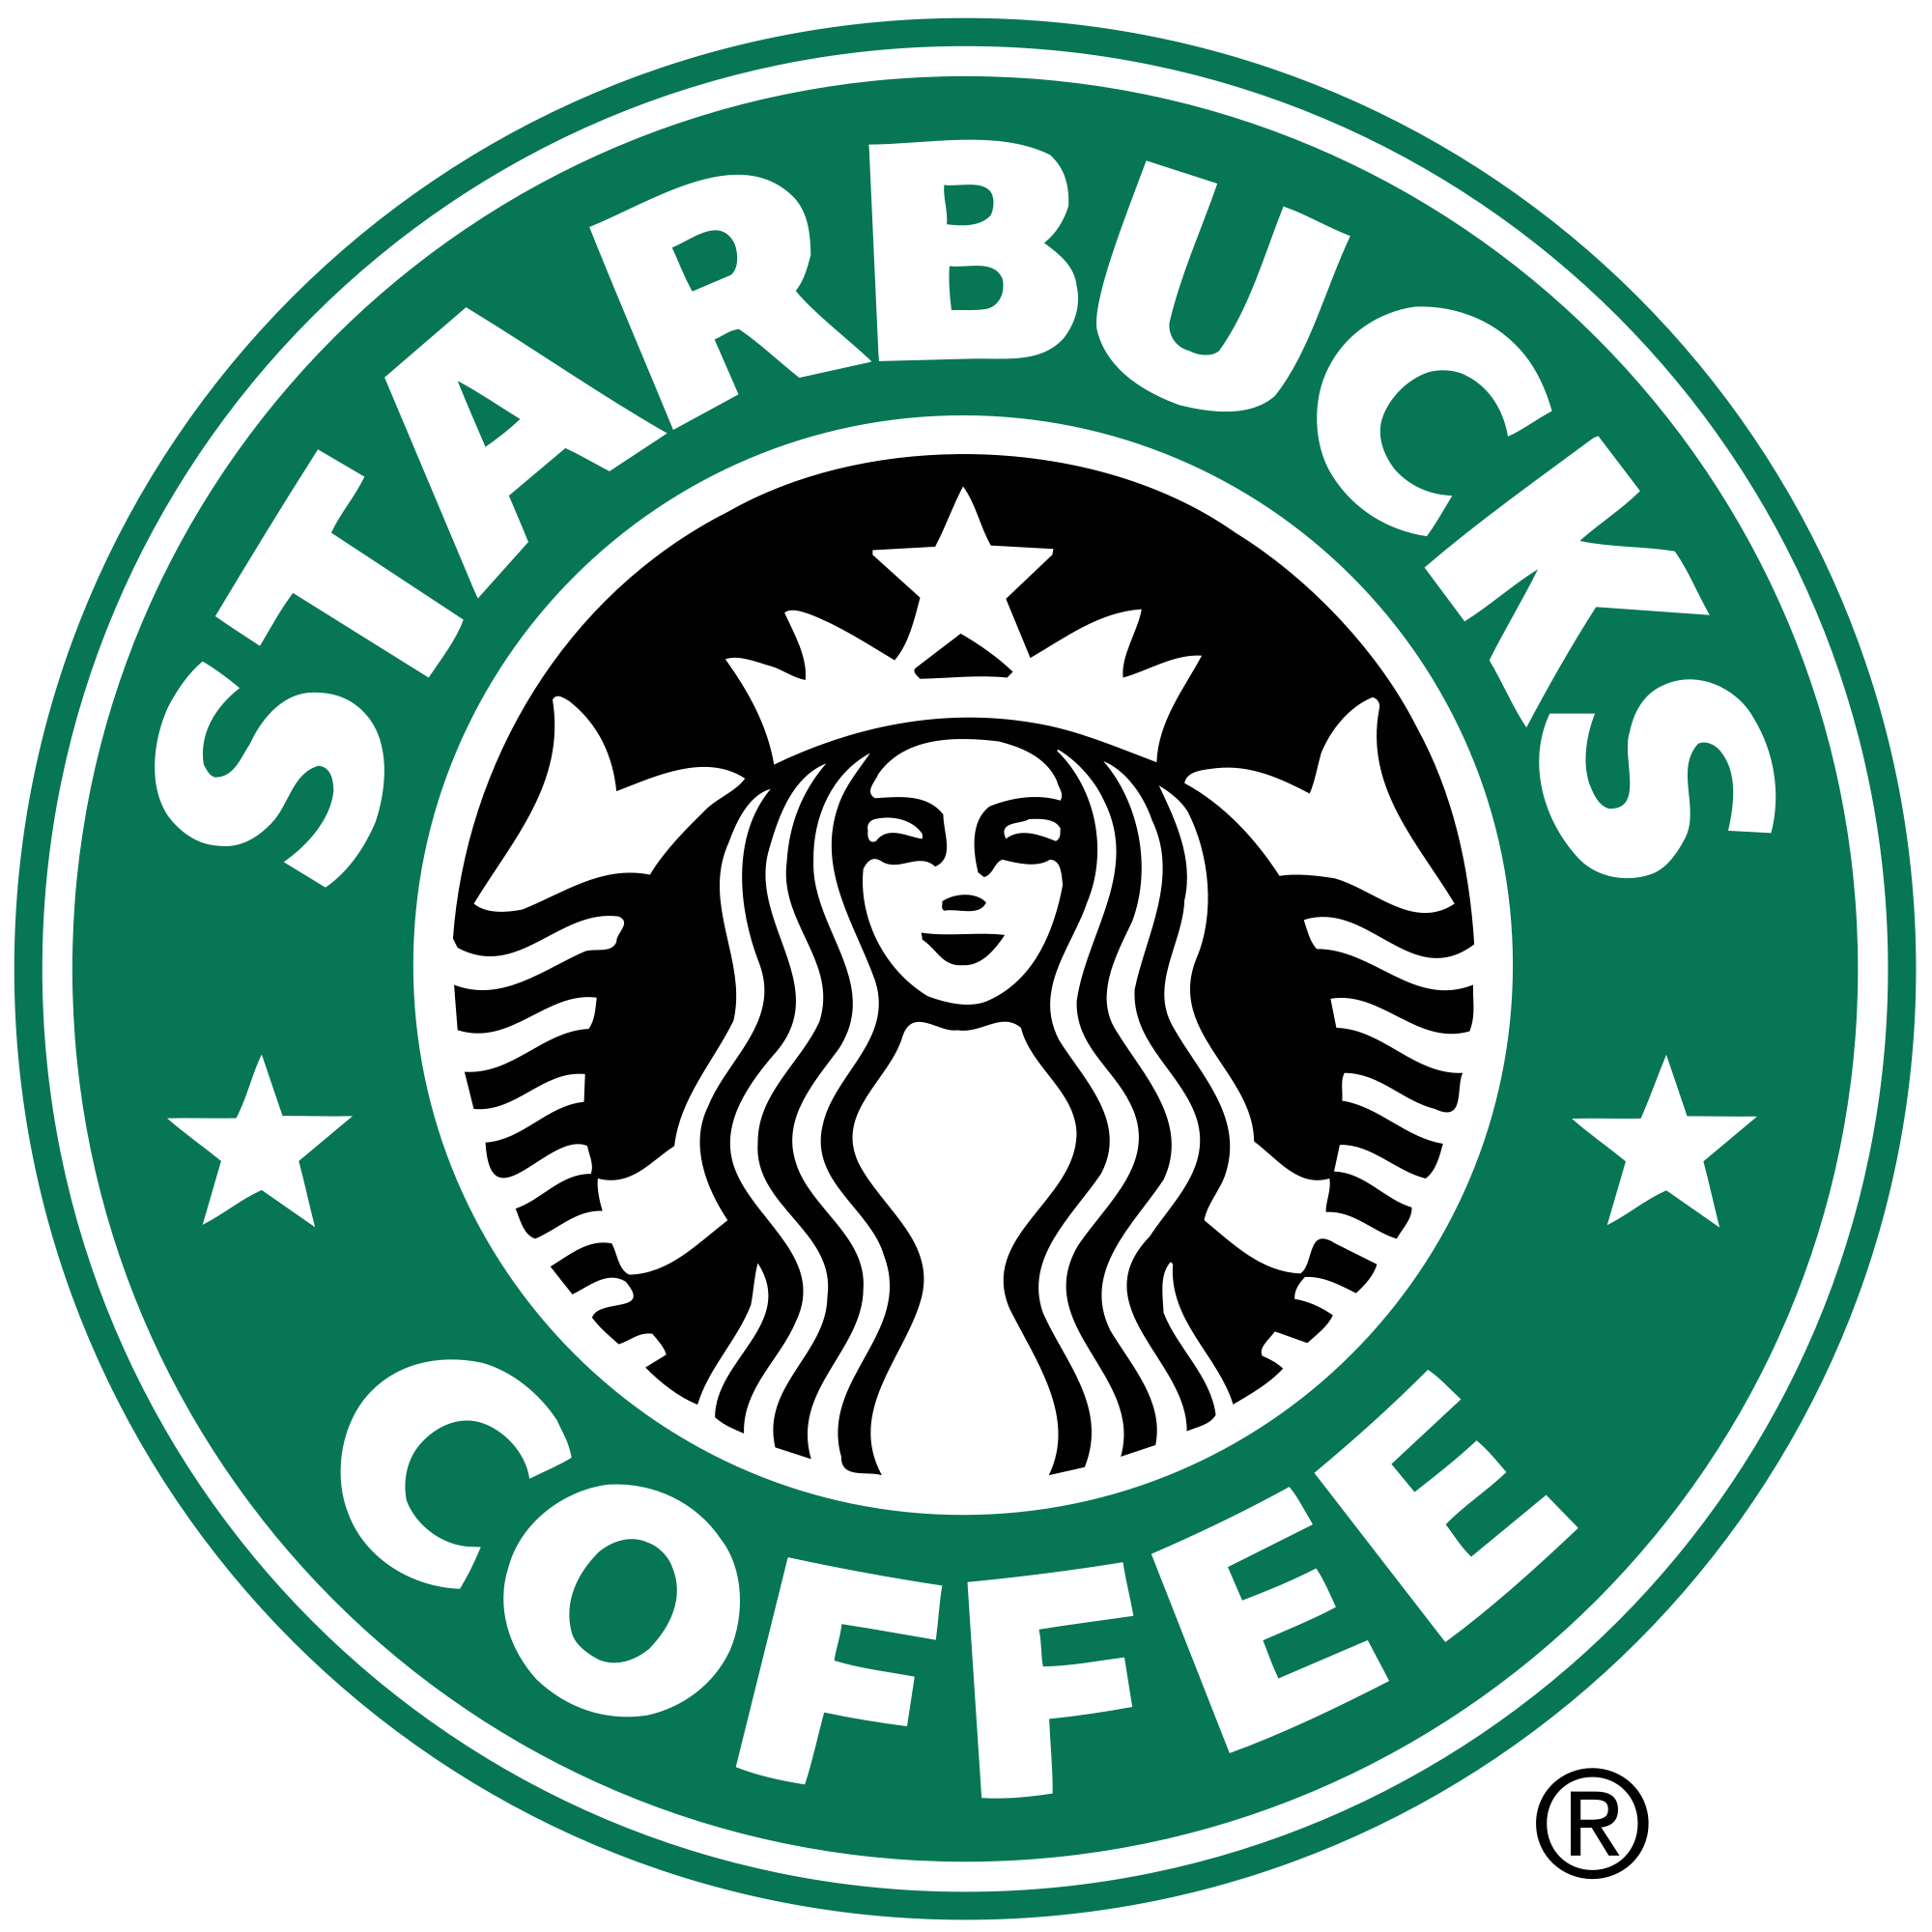 Starbucks coffee logo png. Image svg logopedia fandom